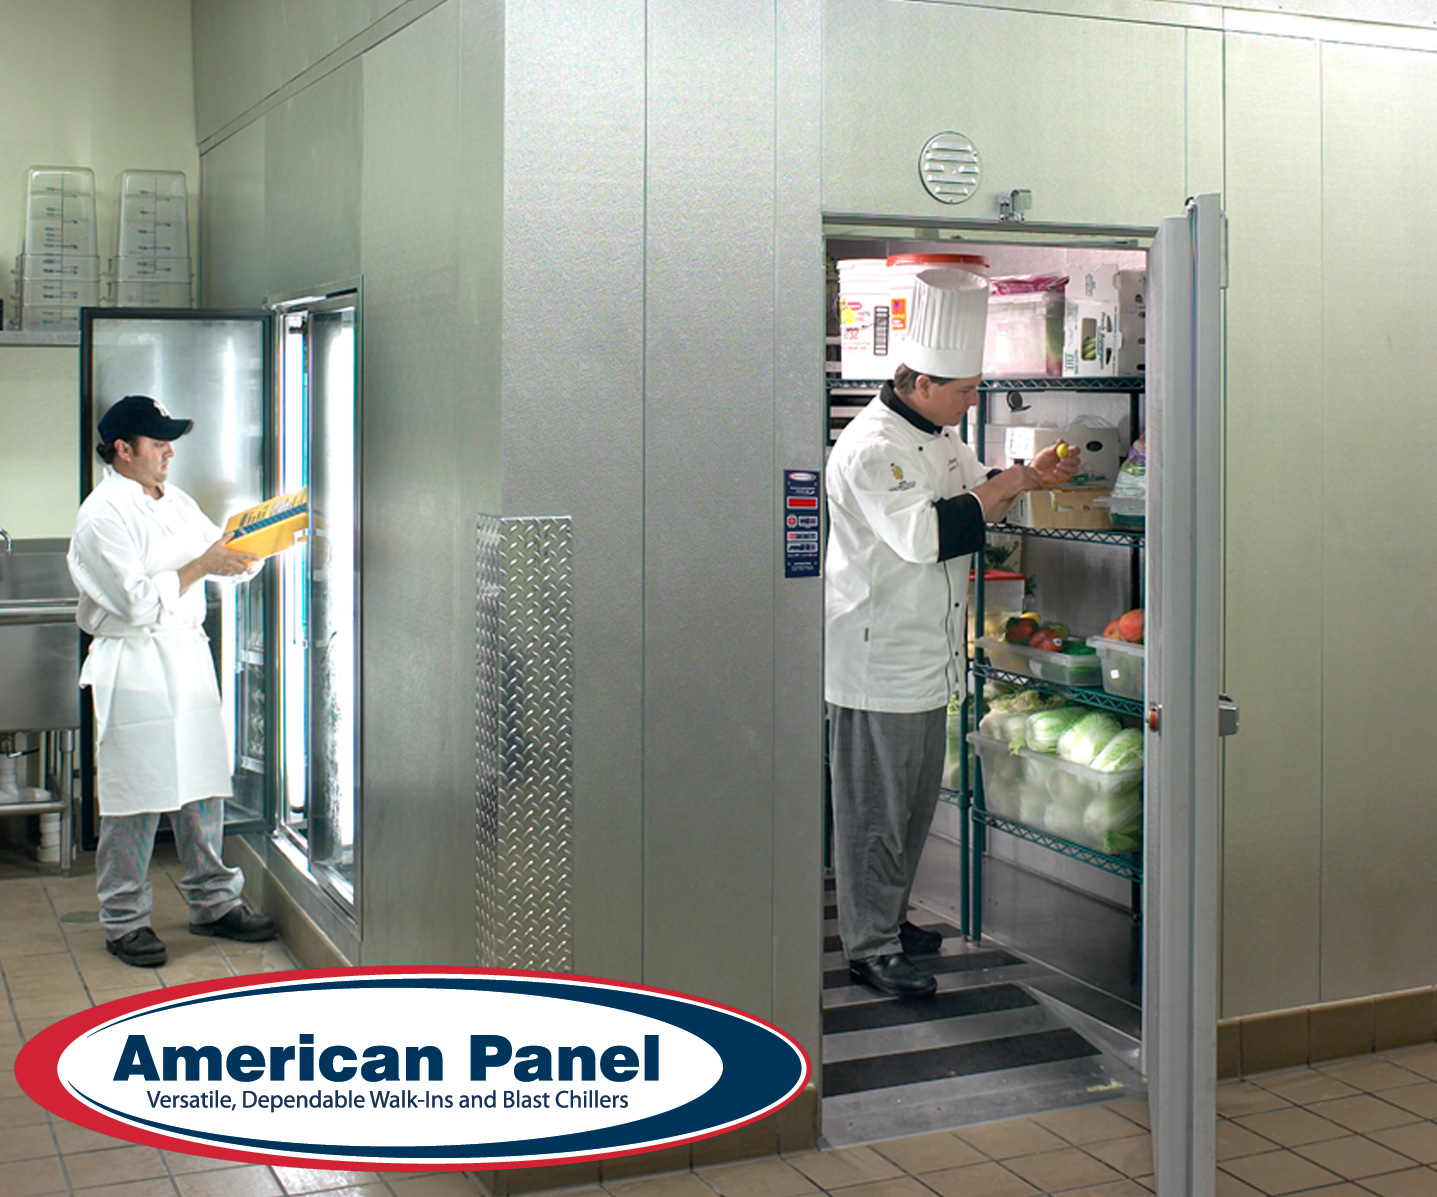 American Panel. Dependable Walk-Ins and Blast Chillers. Learn more.